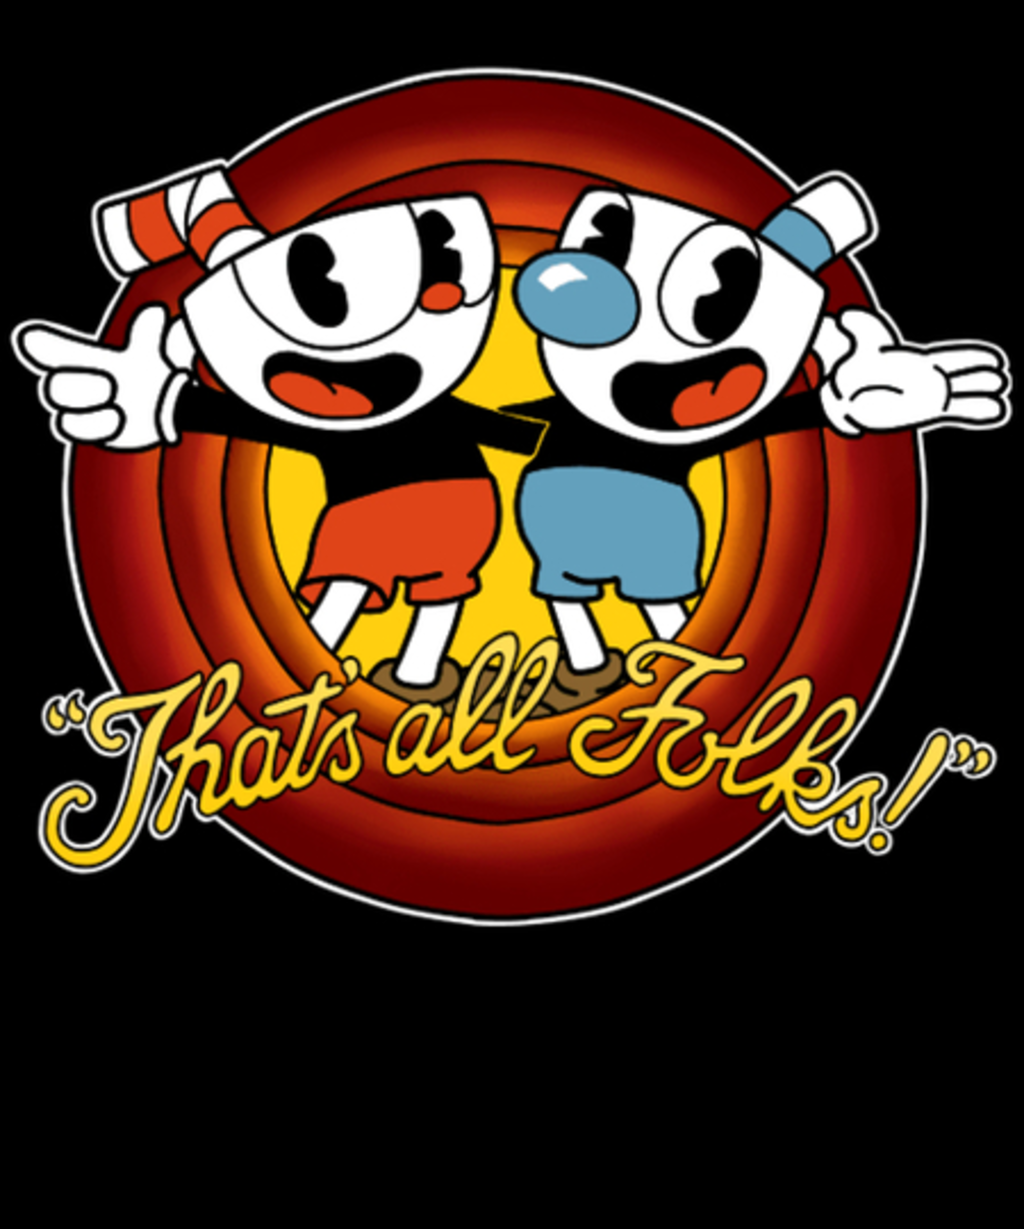 Qwertee: That's all folks!